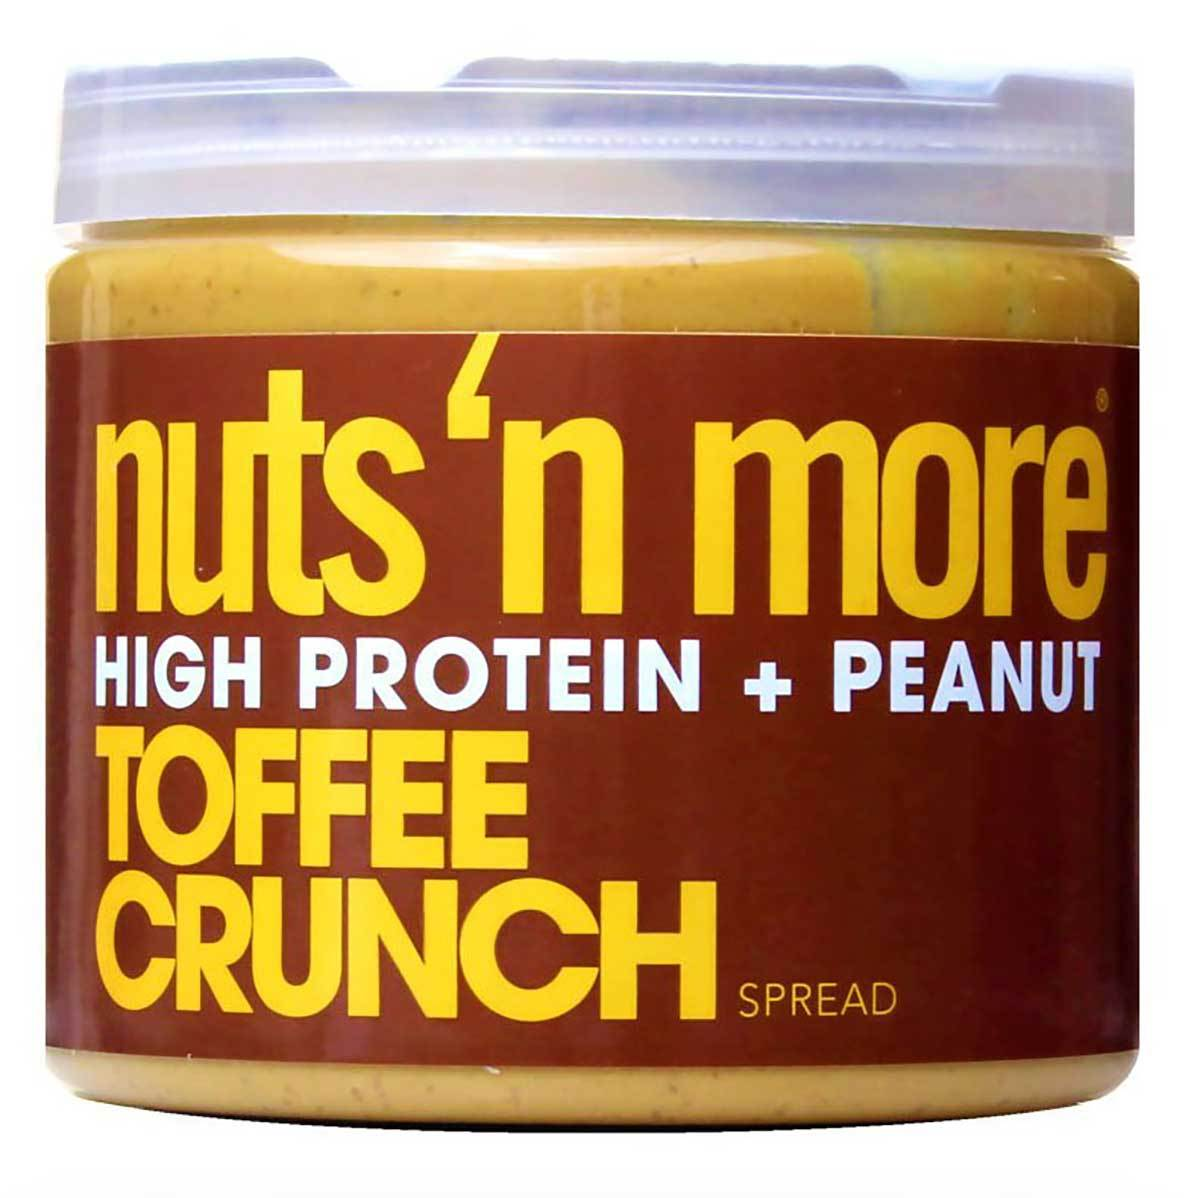 Nuts 'N More Toffee Crunch Peanut Butter 16 Oz Foods & Snacks Nuts 'N More  (1059074048043)